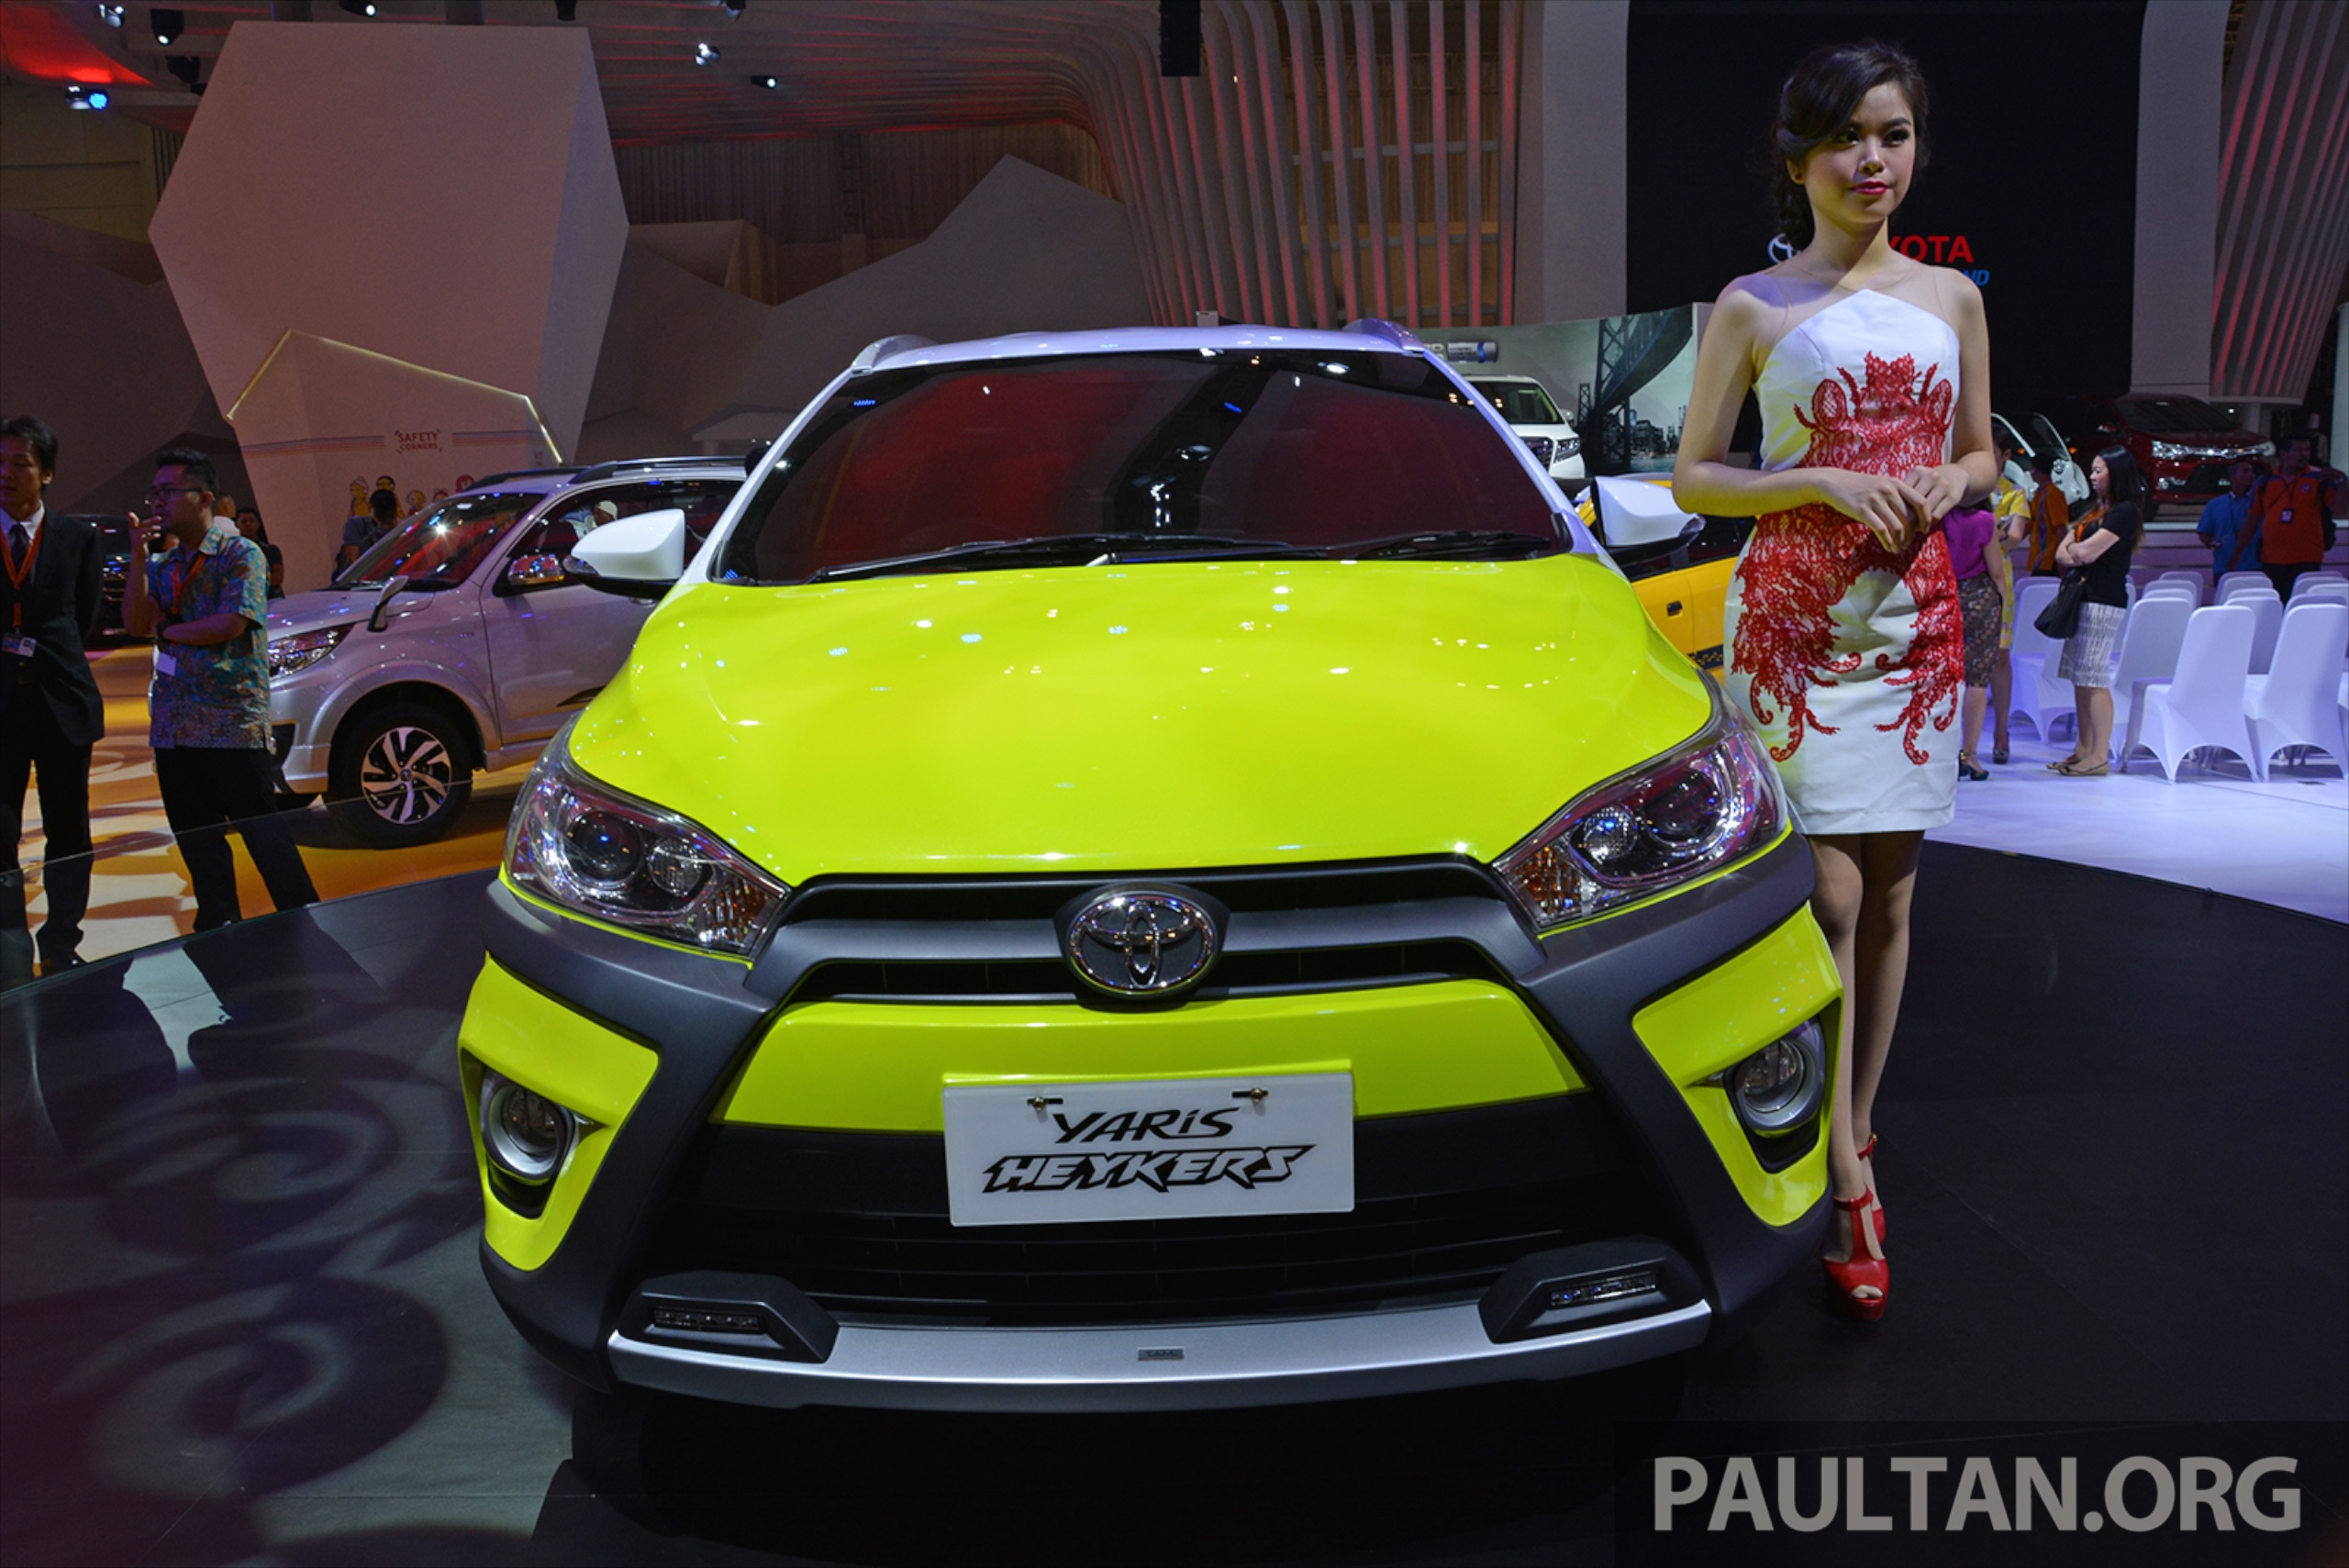 toyota yaris trd heykers grand new avanza veloz modifikasi giias 2015 concept suv looks paul